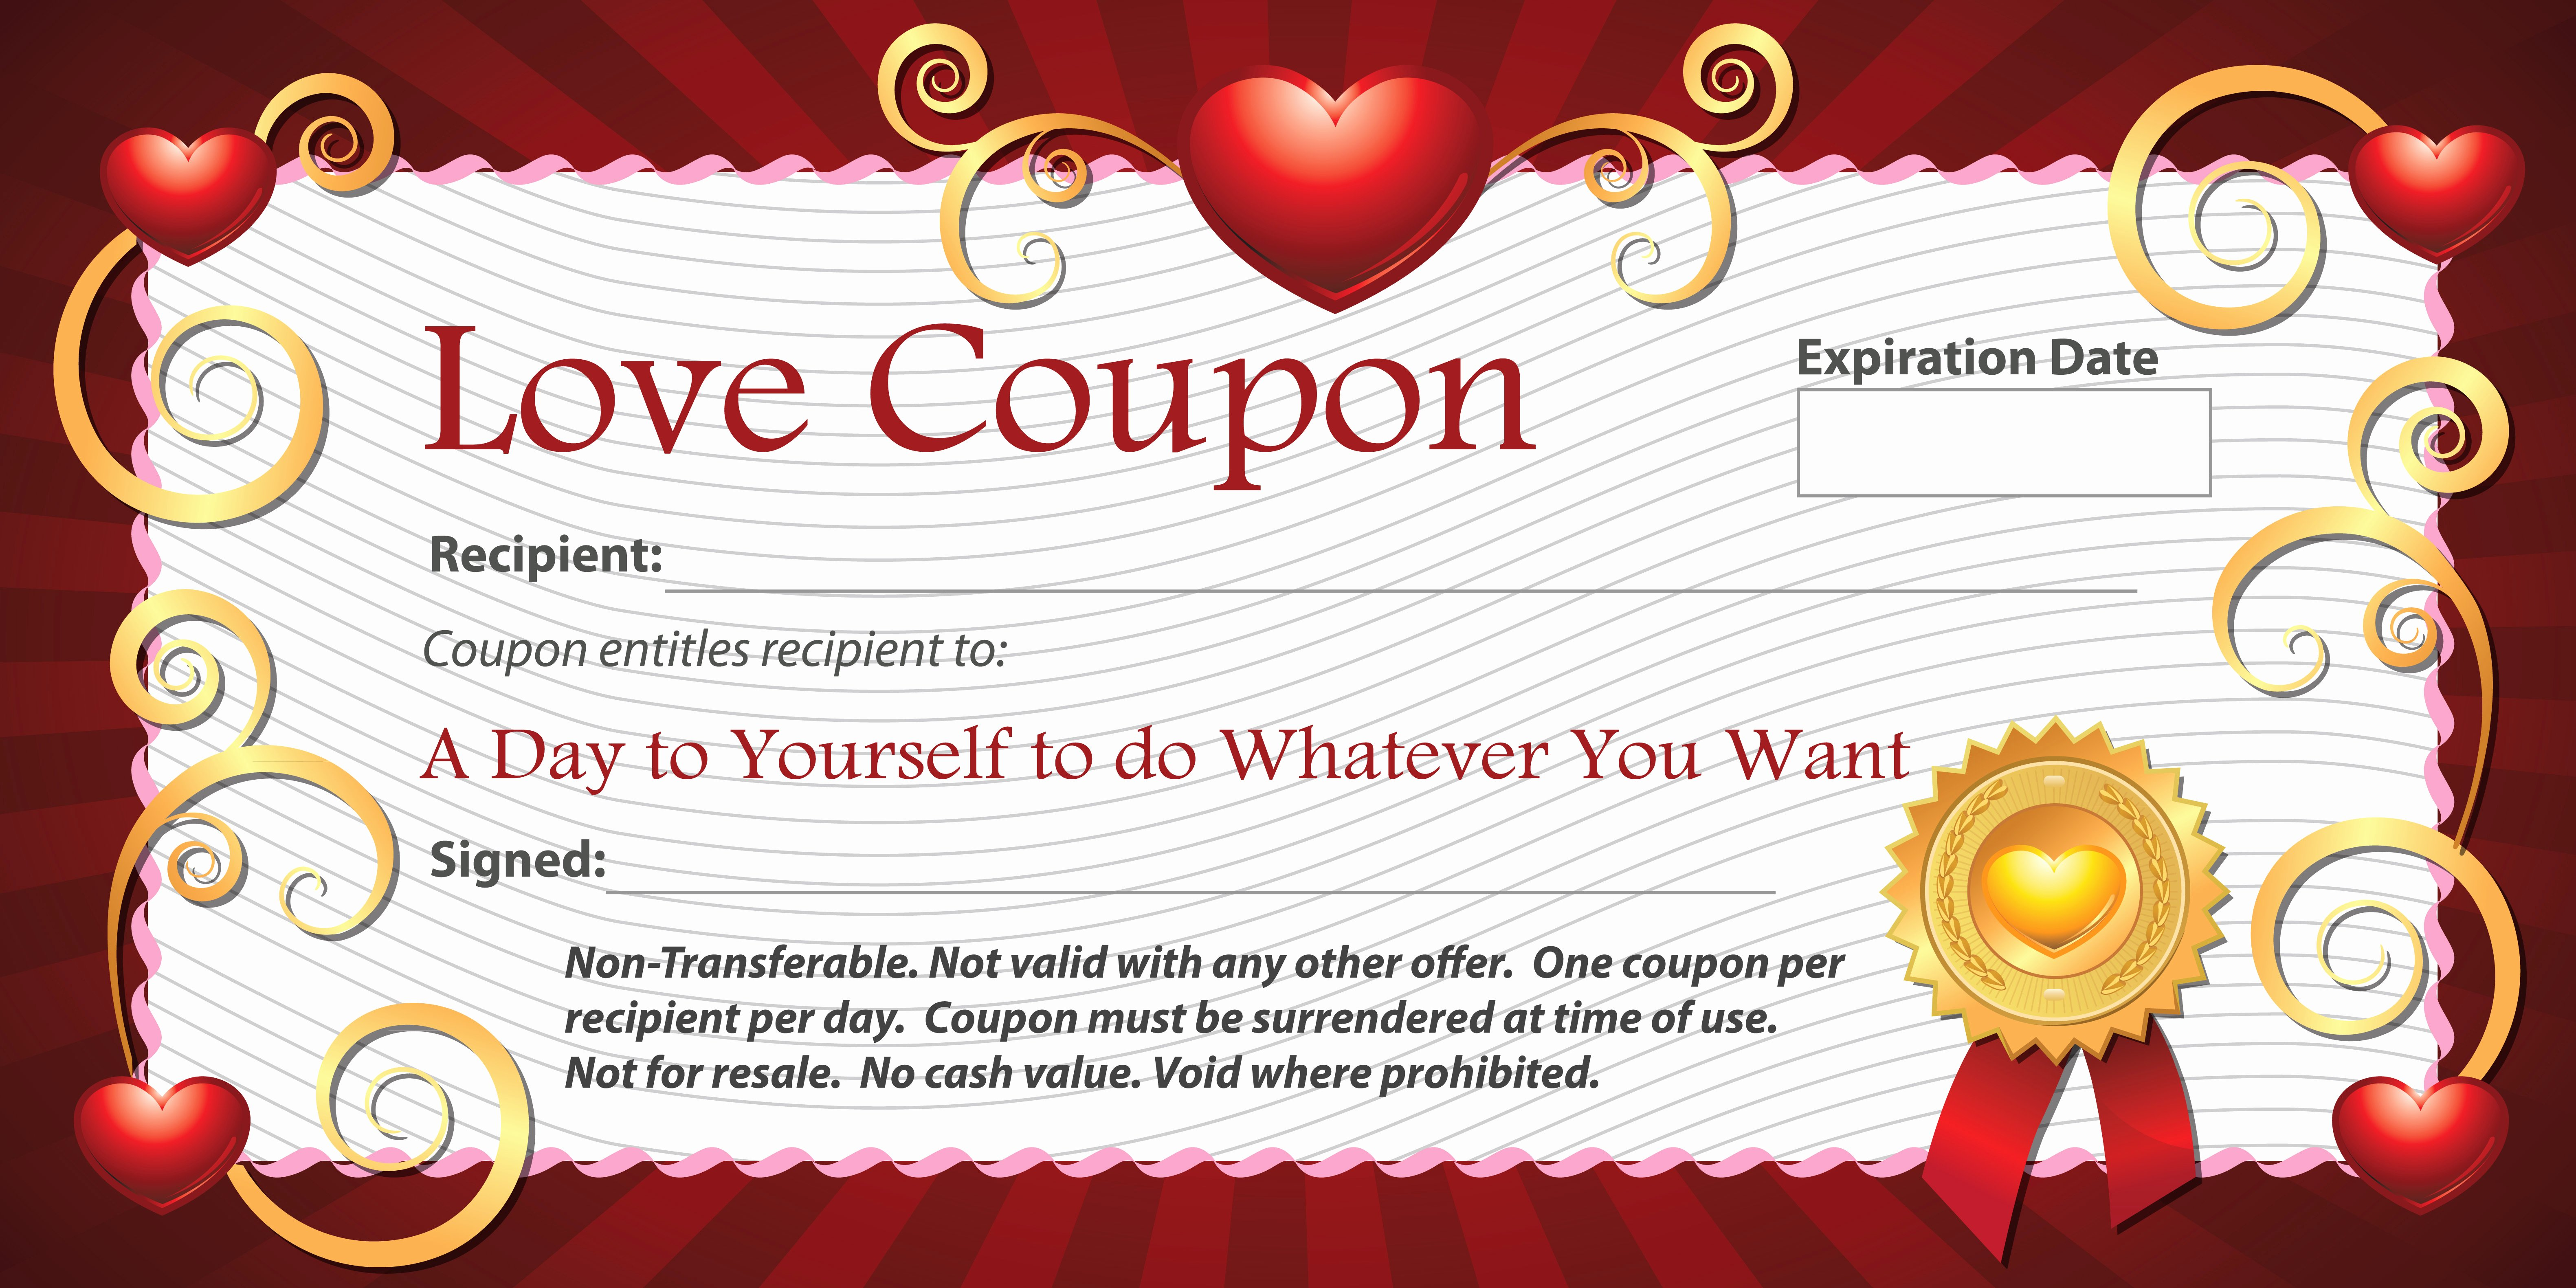 Printable Massage Coupons New 10 Personalized Gift Ideas for someone Special Collections